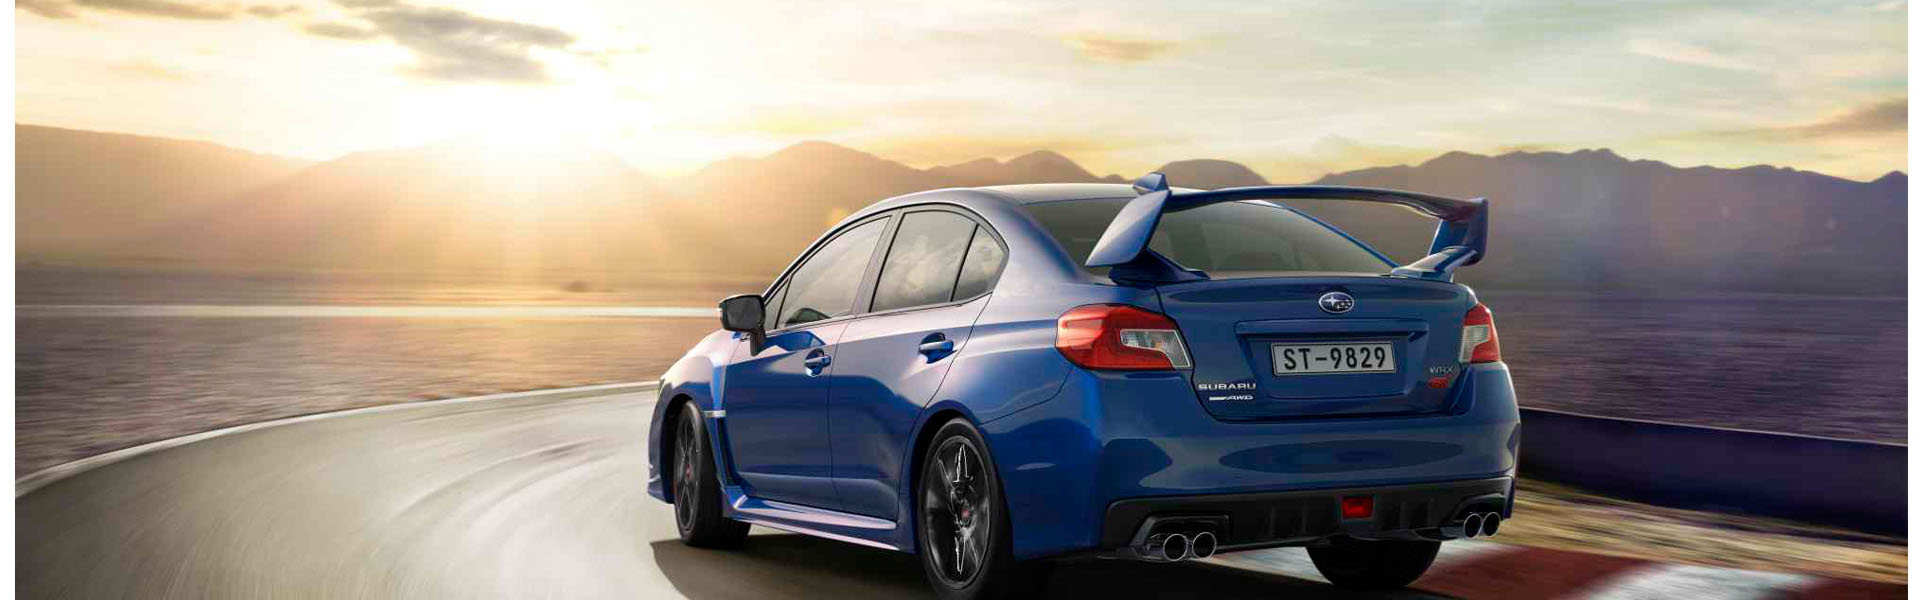 WRX-STI-MY16-Headerbild-4